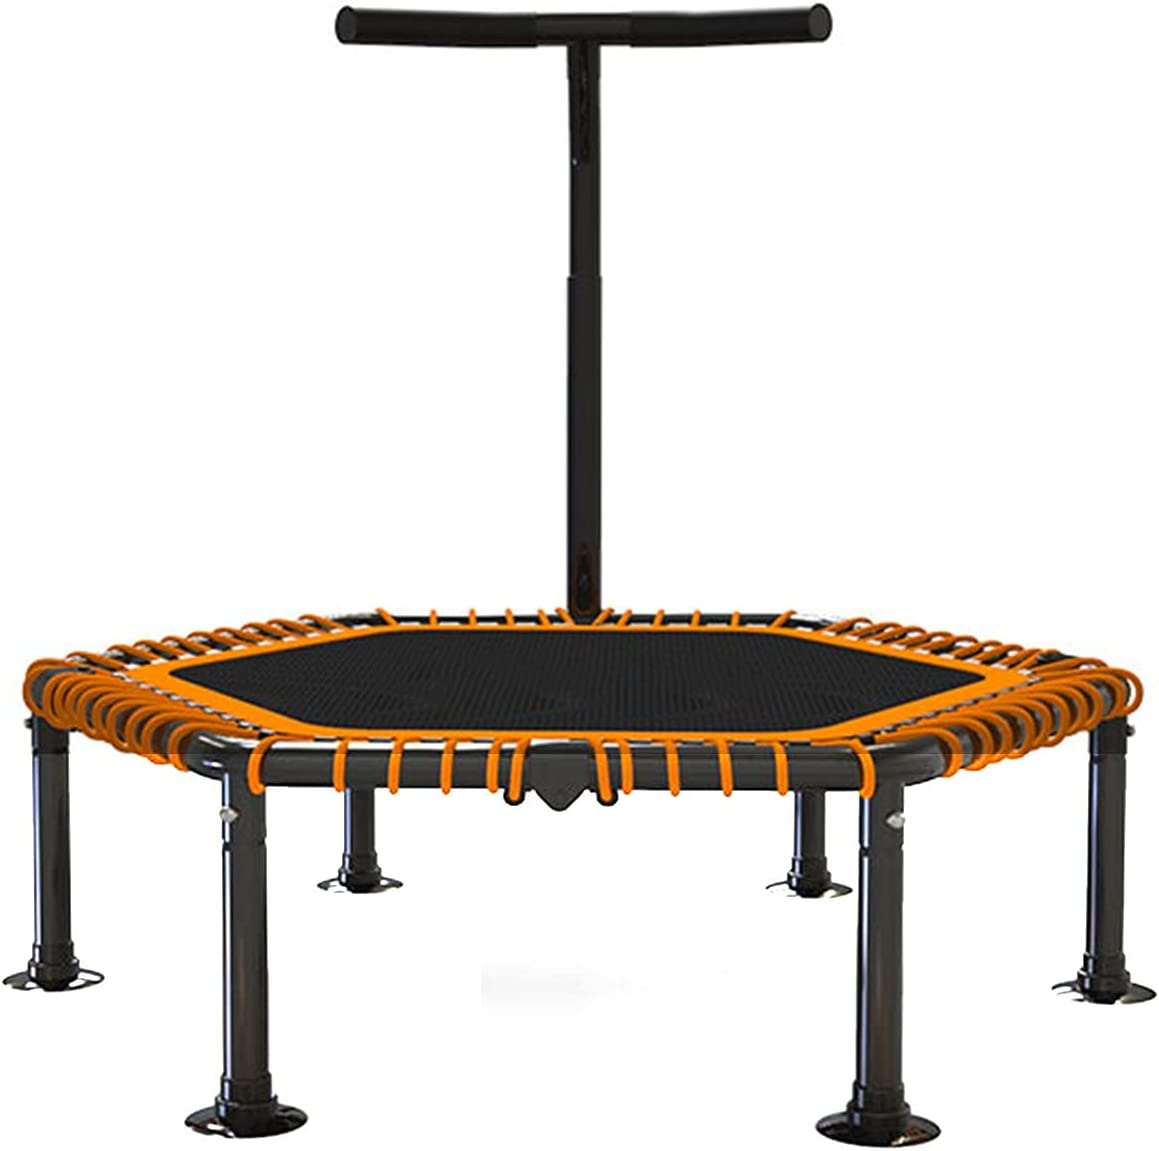 Trampoline 2021new shipping free Dallas Mall Mini Folding with Armrests Adjustable Sil